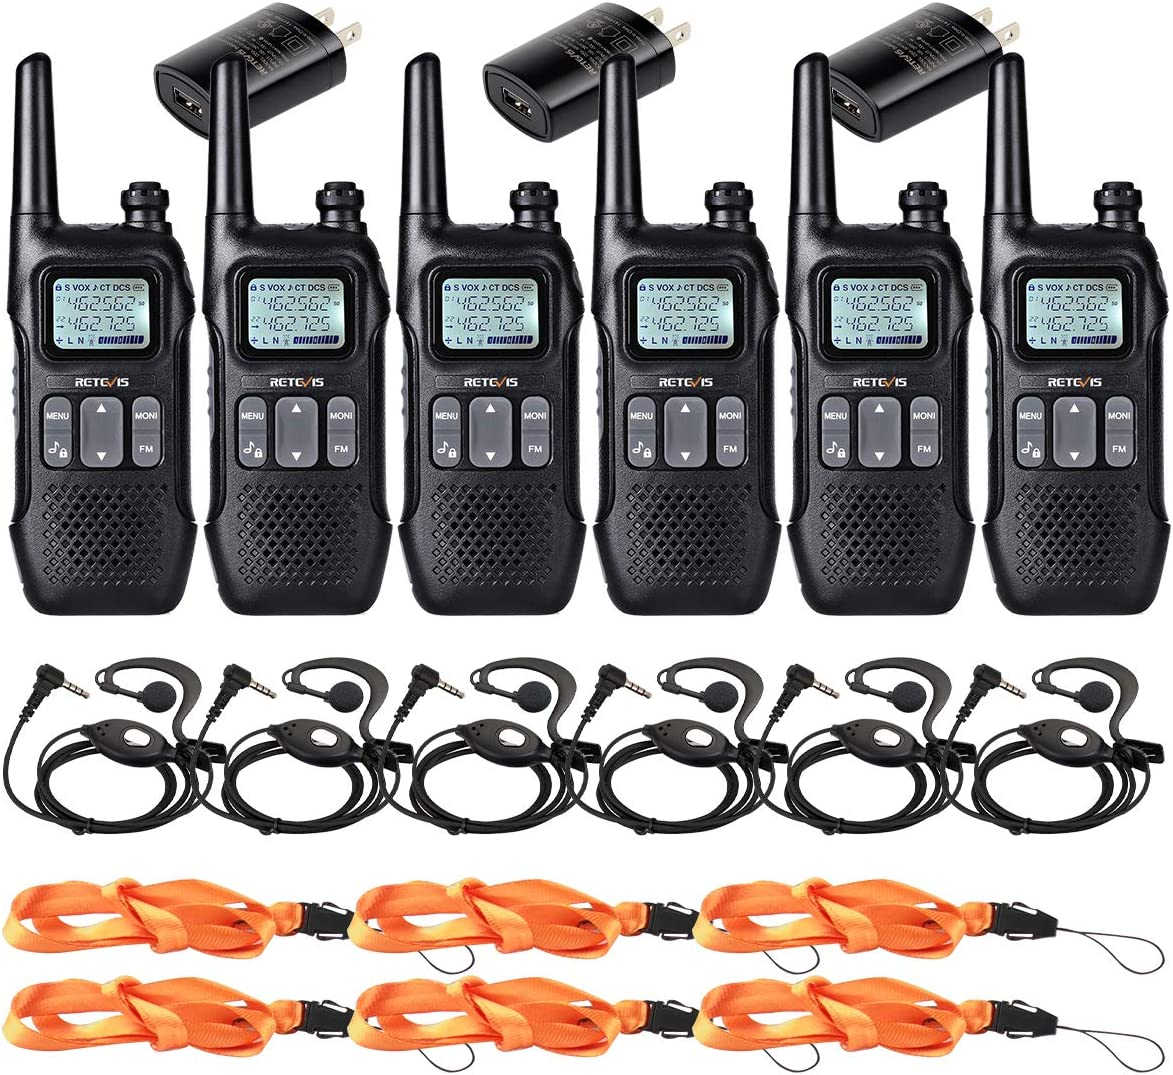 Retevis RT16 Walkie Talkie for Adult Long Range Two Way Radio NOAA Emergency Dual Watch Flashlight FM USB VOX 2 Way Radio with Earpiece 6 Pack